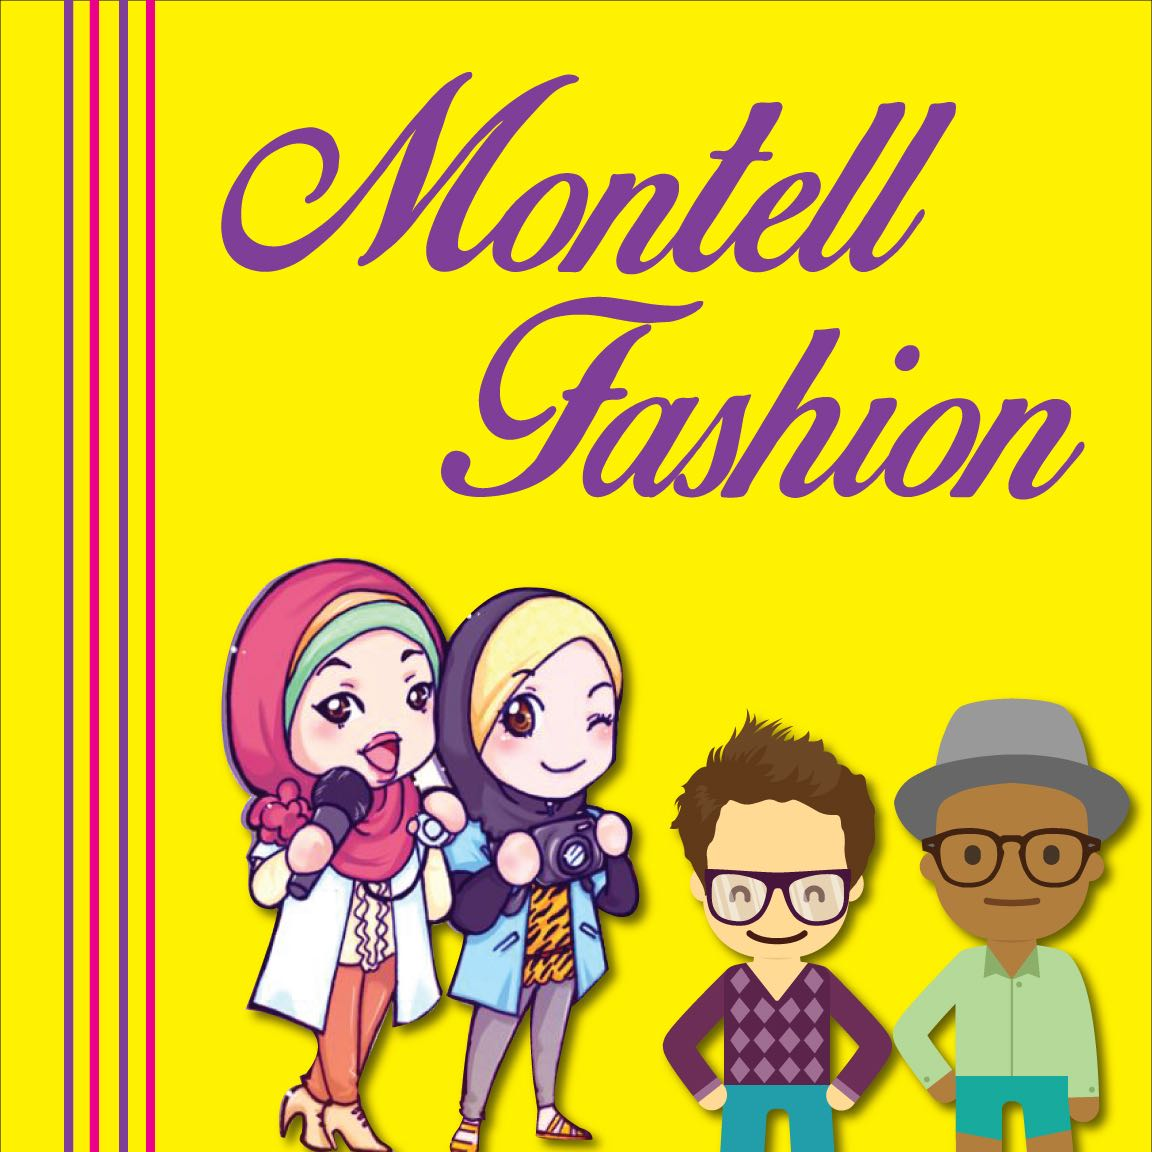 montellfashion